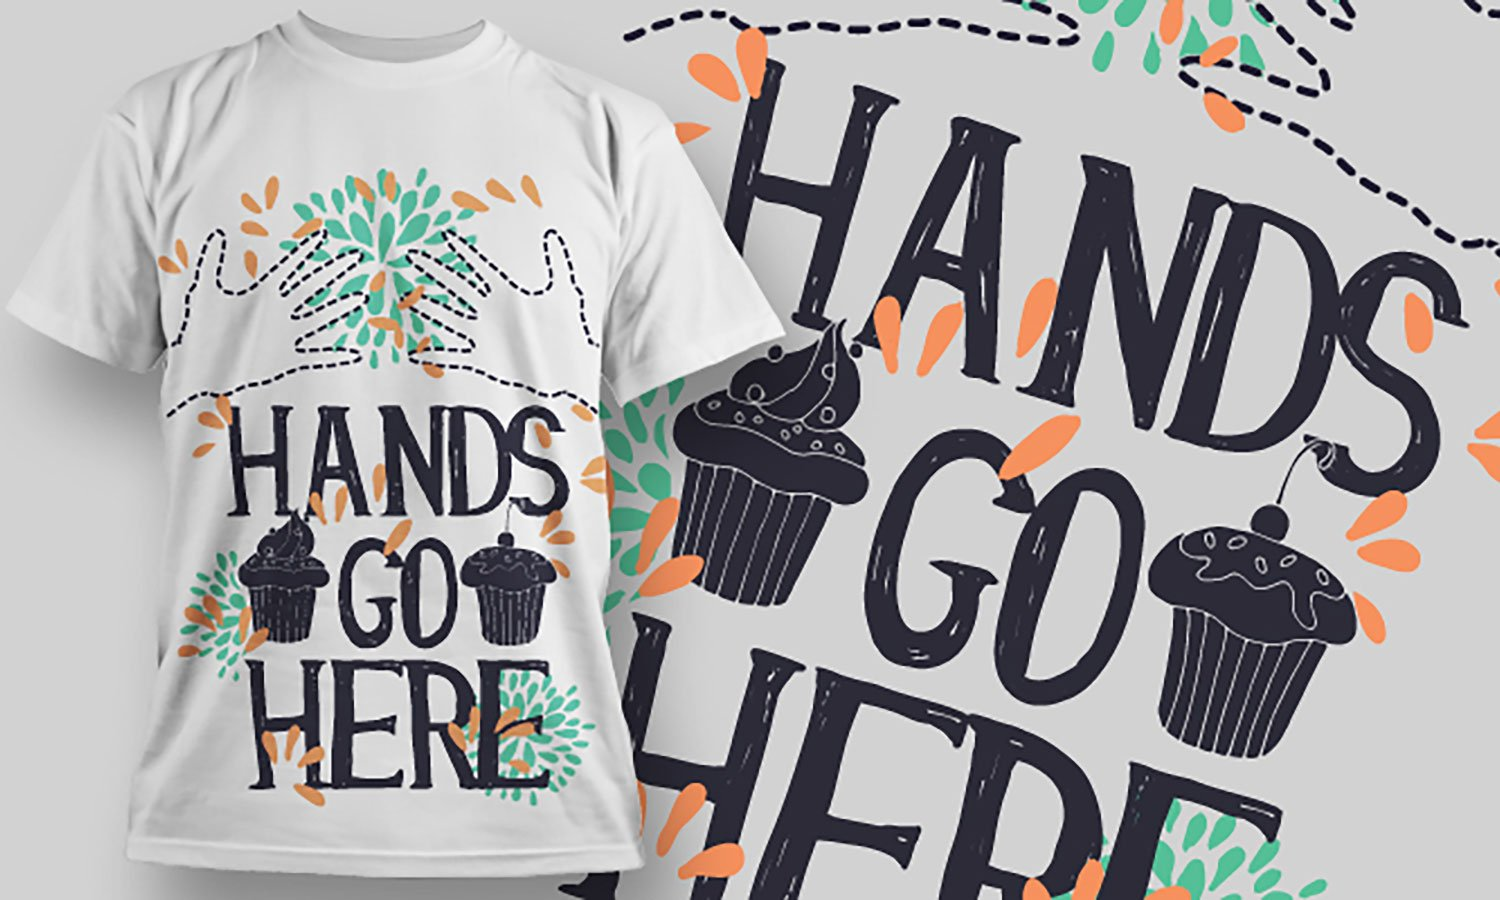 Hands Go Here - Printed T-Shirt for Men, Women and Kids - TS278